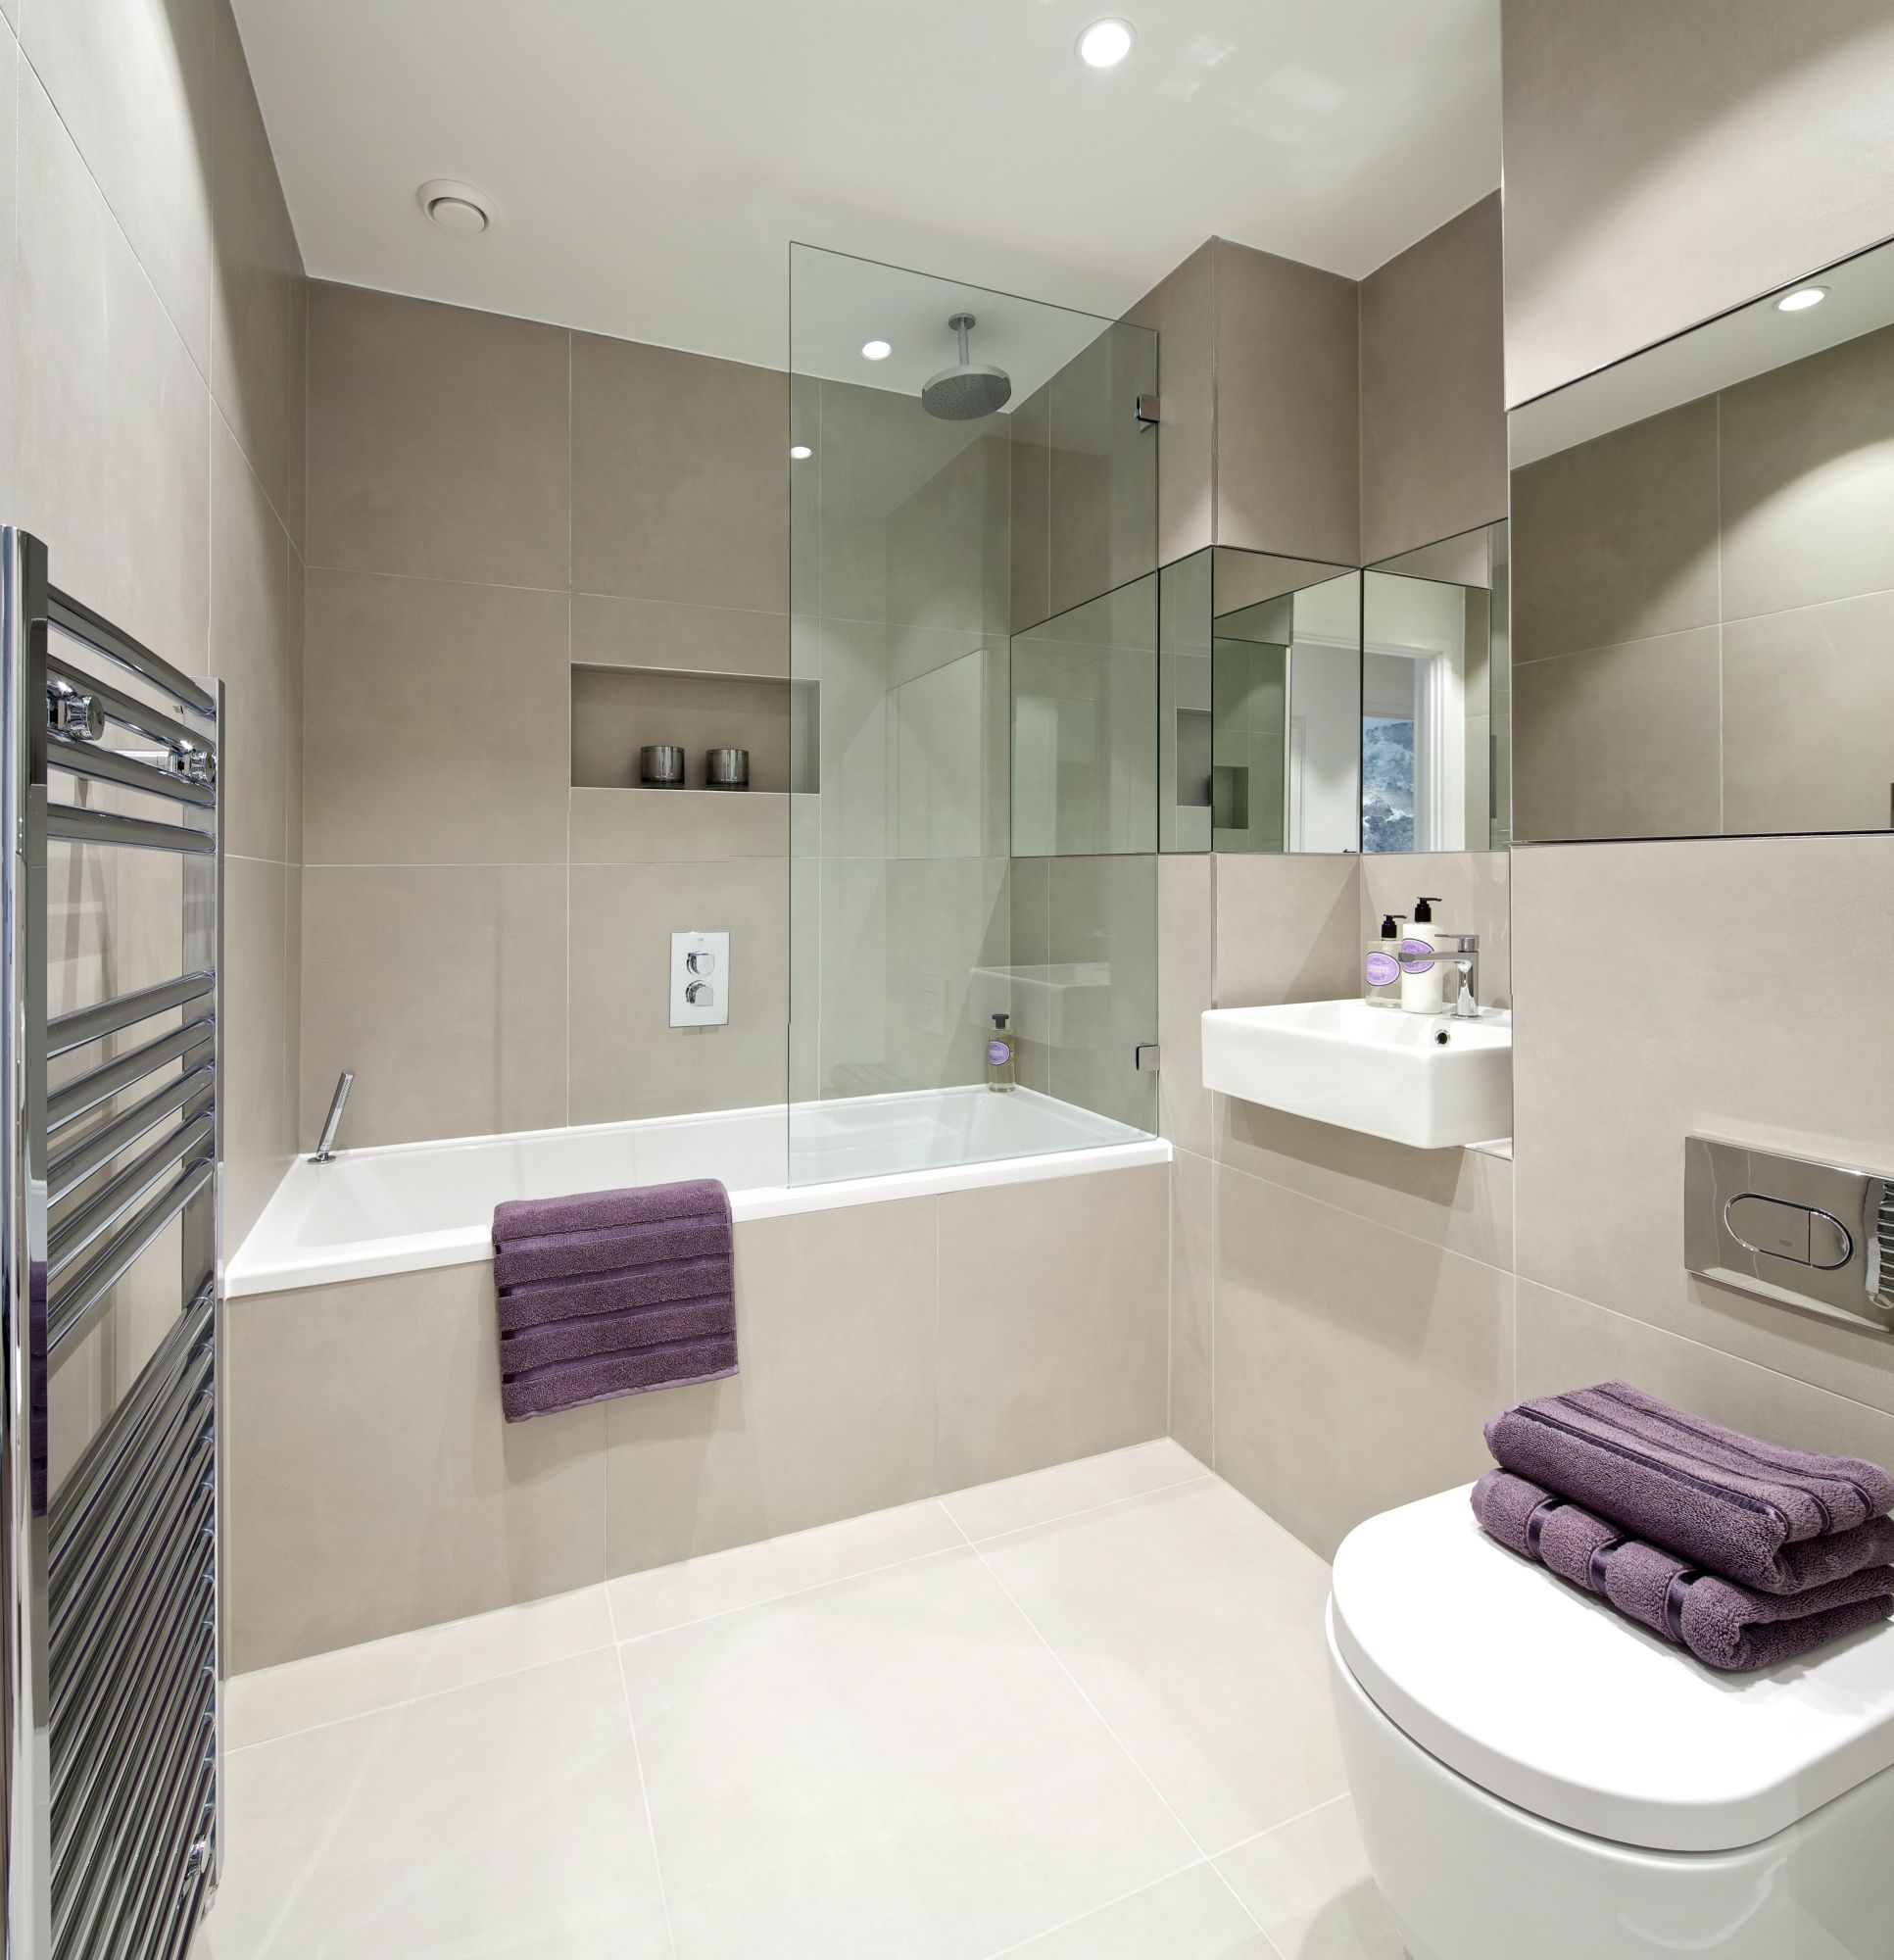 Stunning Home Interiors Bathroom Another Stunning Show Home Design By Suna Interior Design